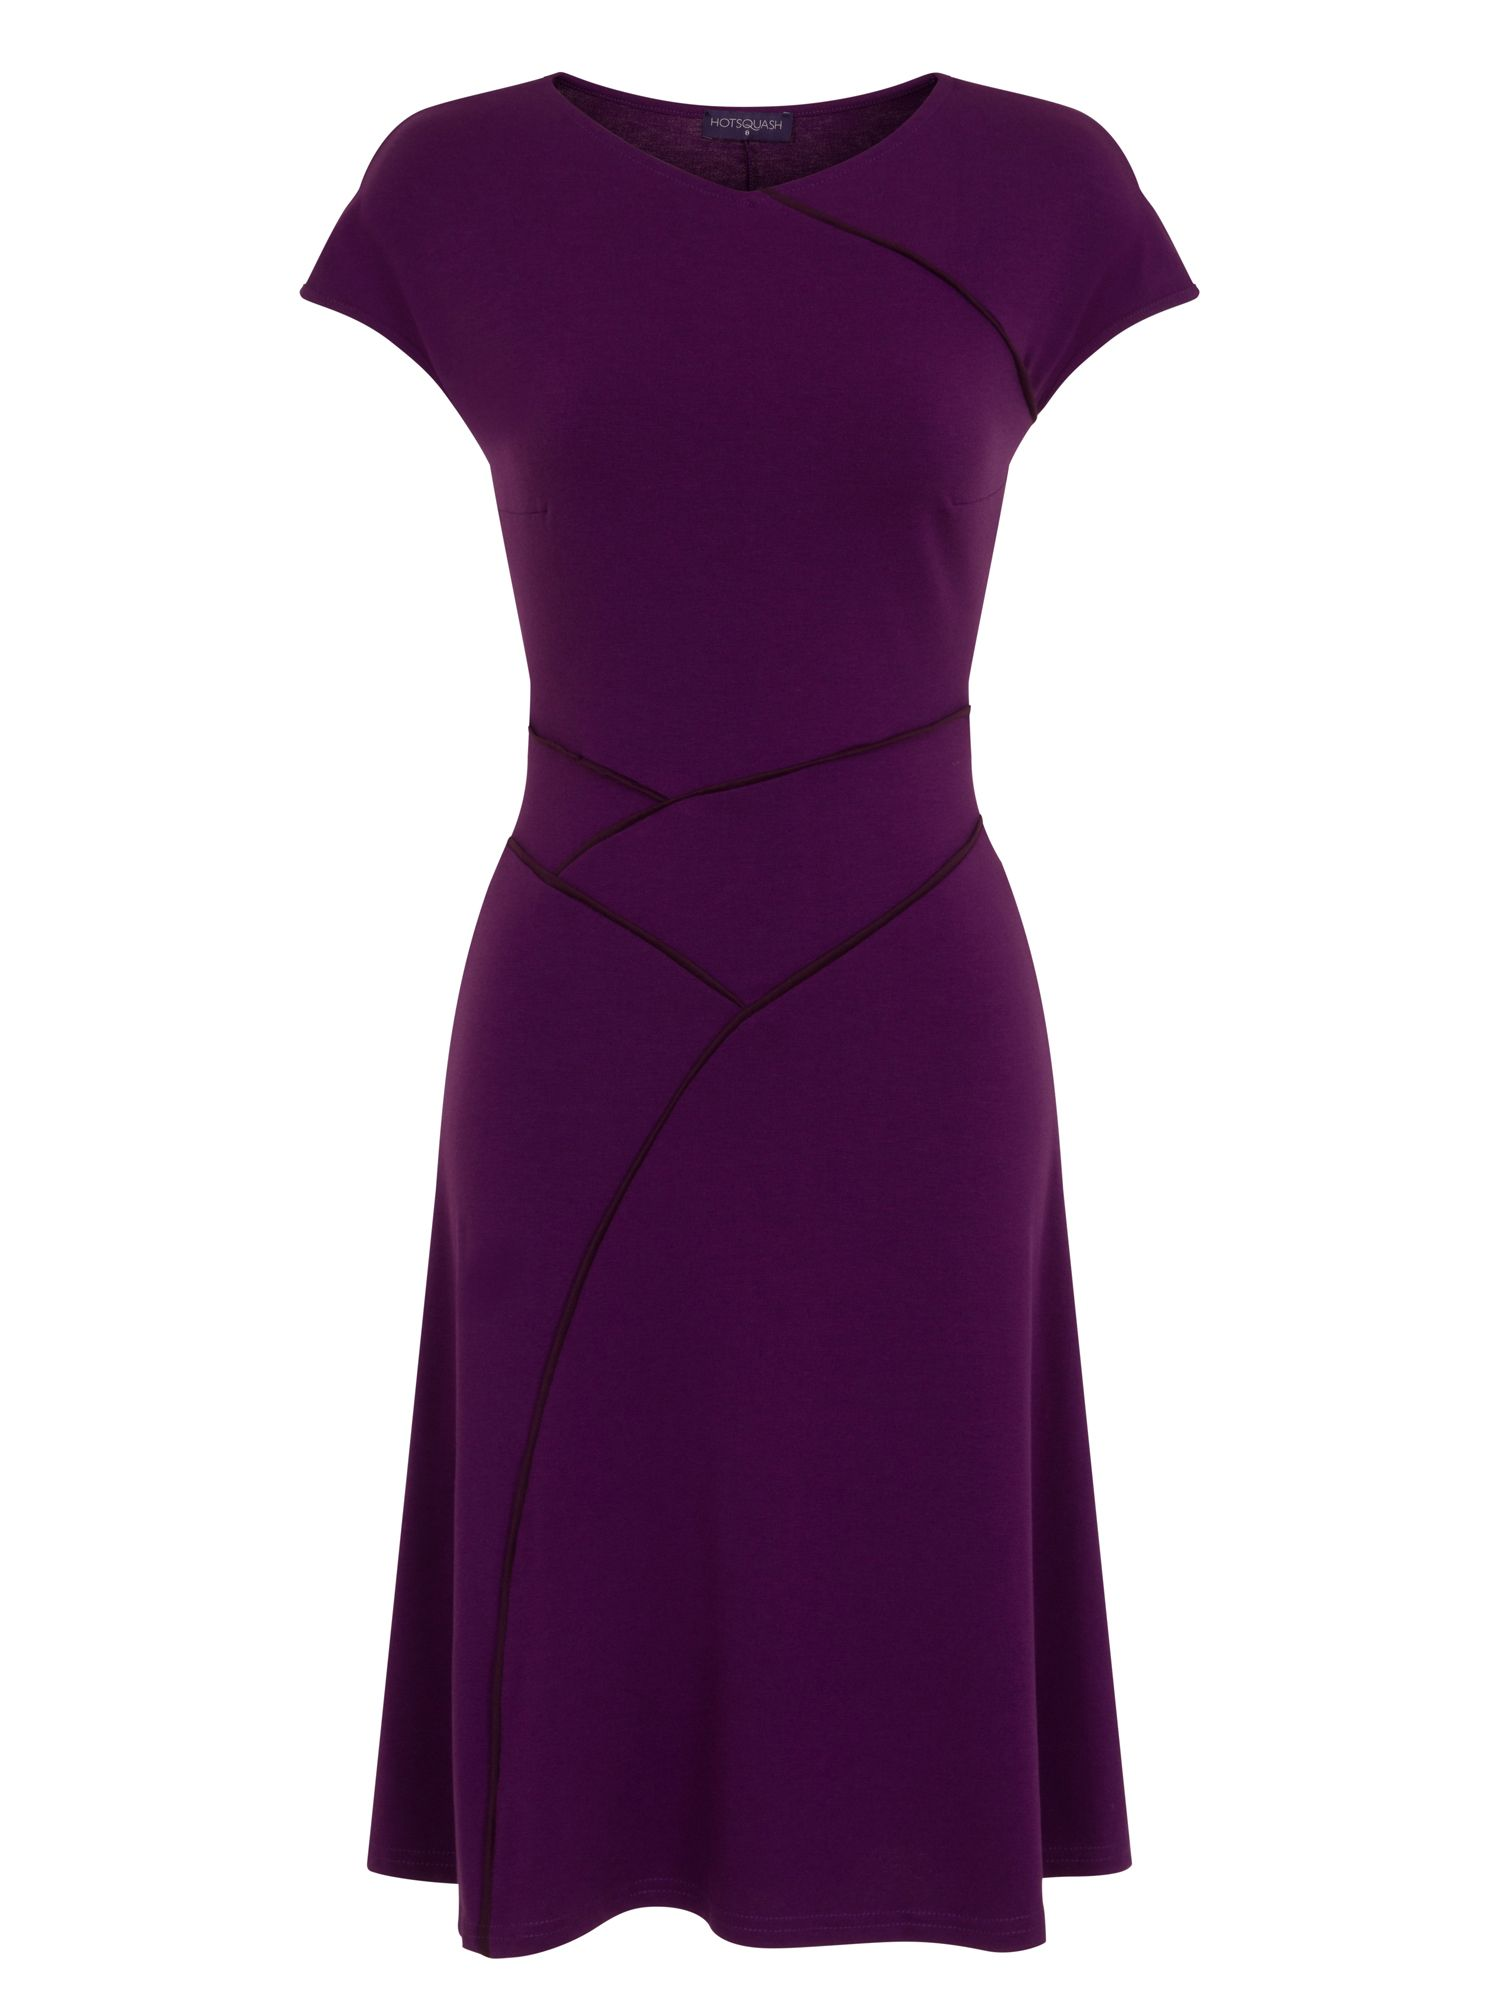 HotSquash Summer Dress in CoolFresh Fabric, Purple